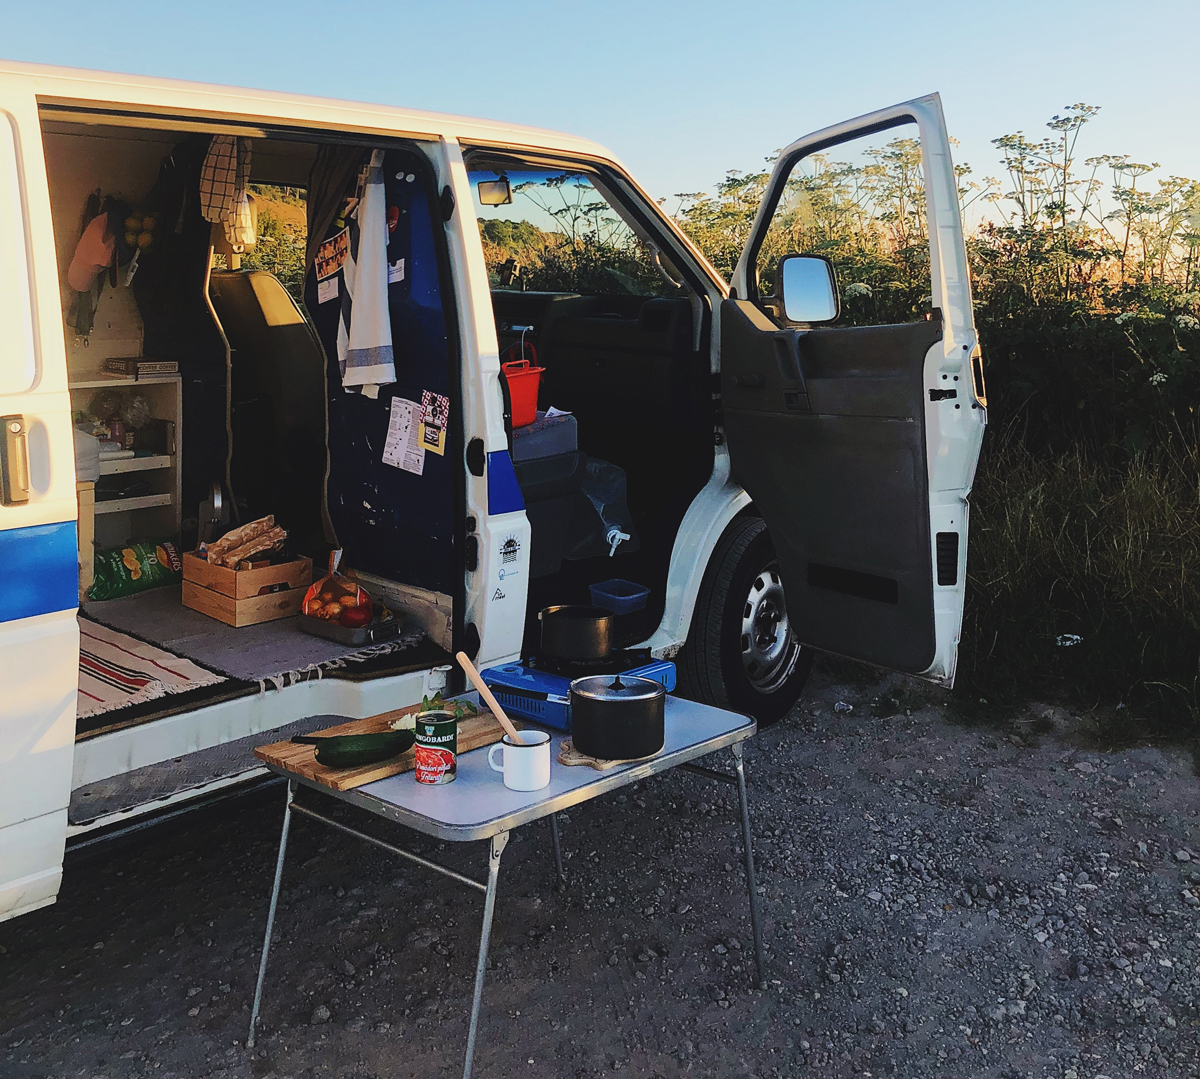 A campervan set up next to a crop field with a table set up outside for cooking